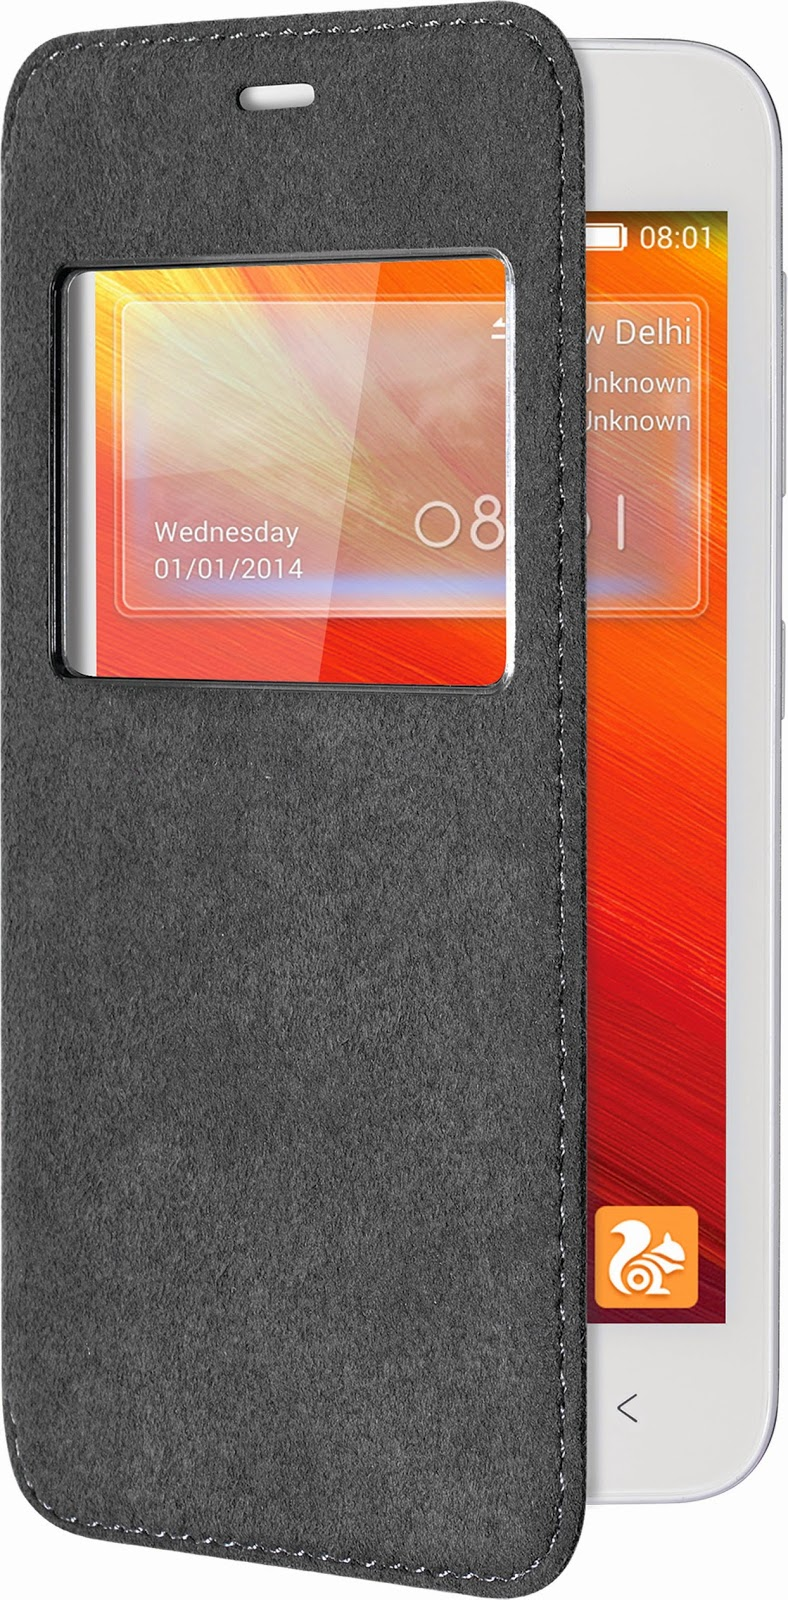 Gionee Pioneer P4S with black flip cover